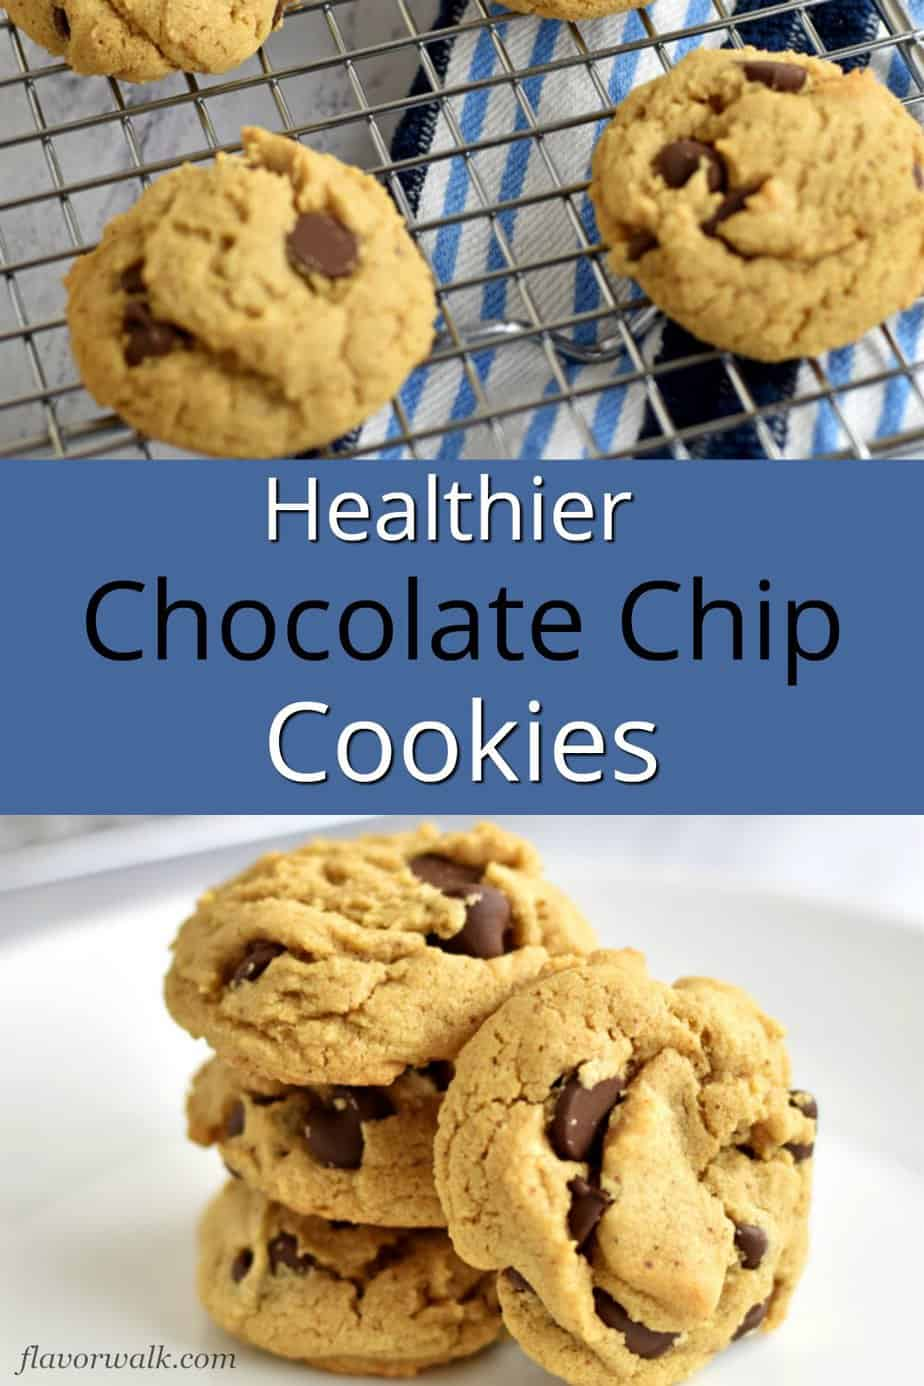 Top image is four chocolate chip almond butter cookies on a wire rack, middle image is blue text overlay, bottom image is a stack of four chocolate chip almond butter cookies on a round white plate.